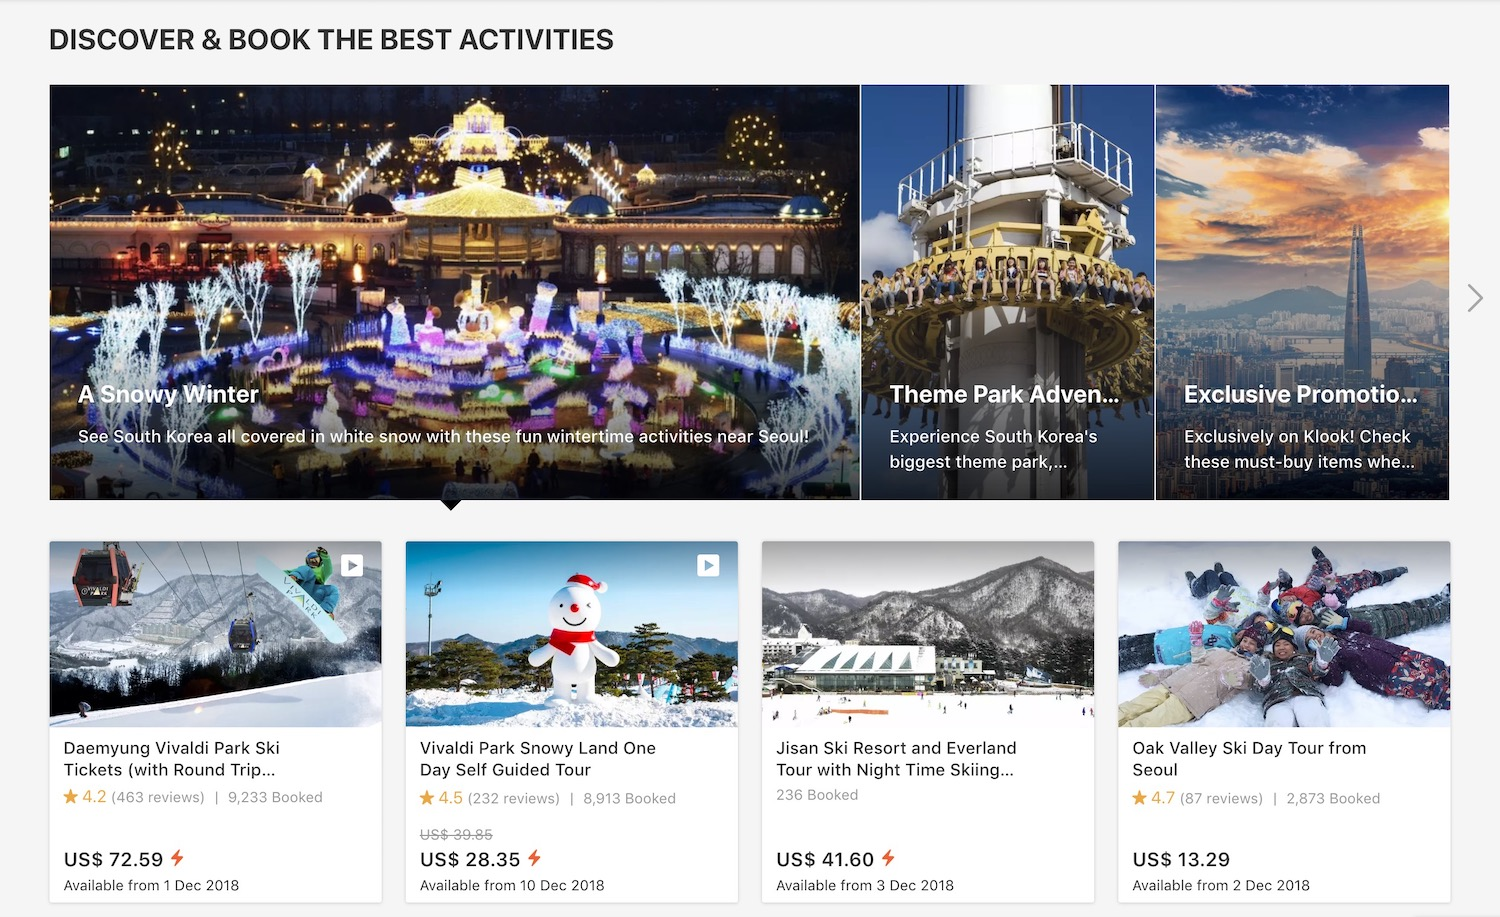 Klook Travel Activities Platform Review - Is This A Scam